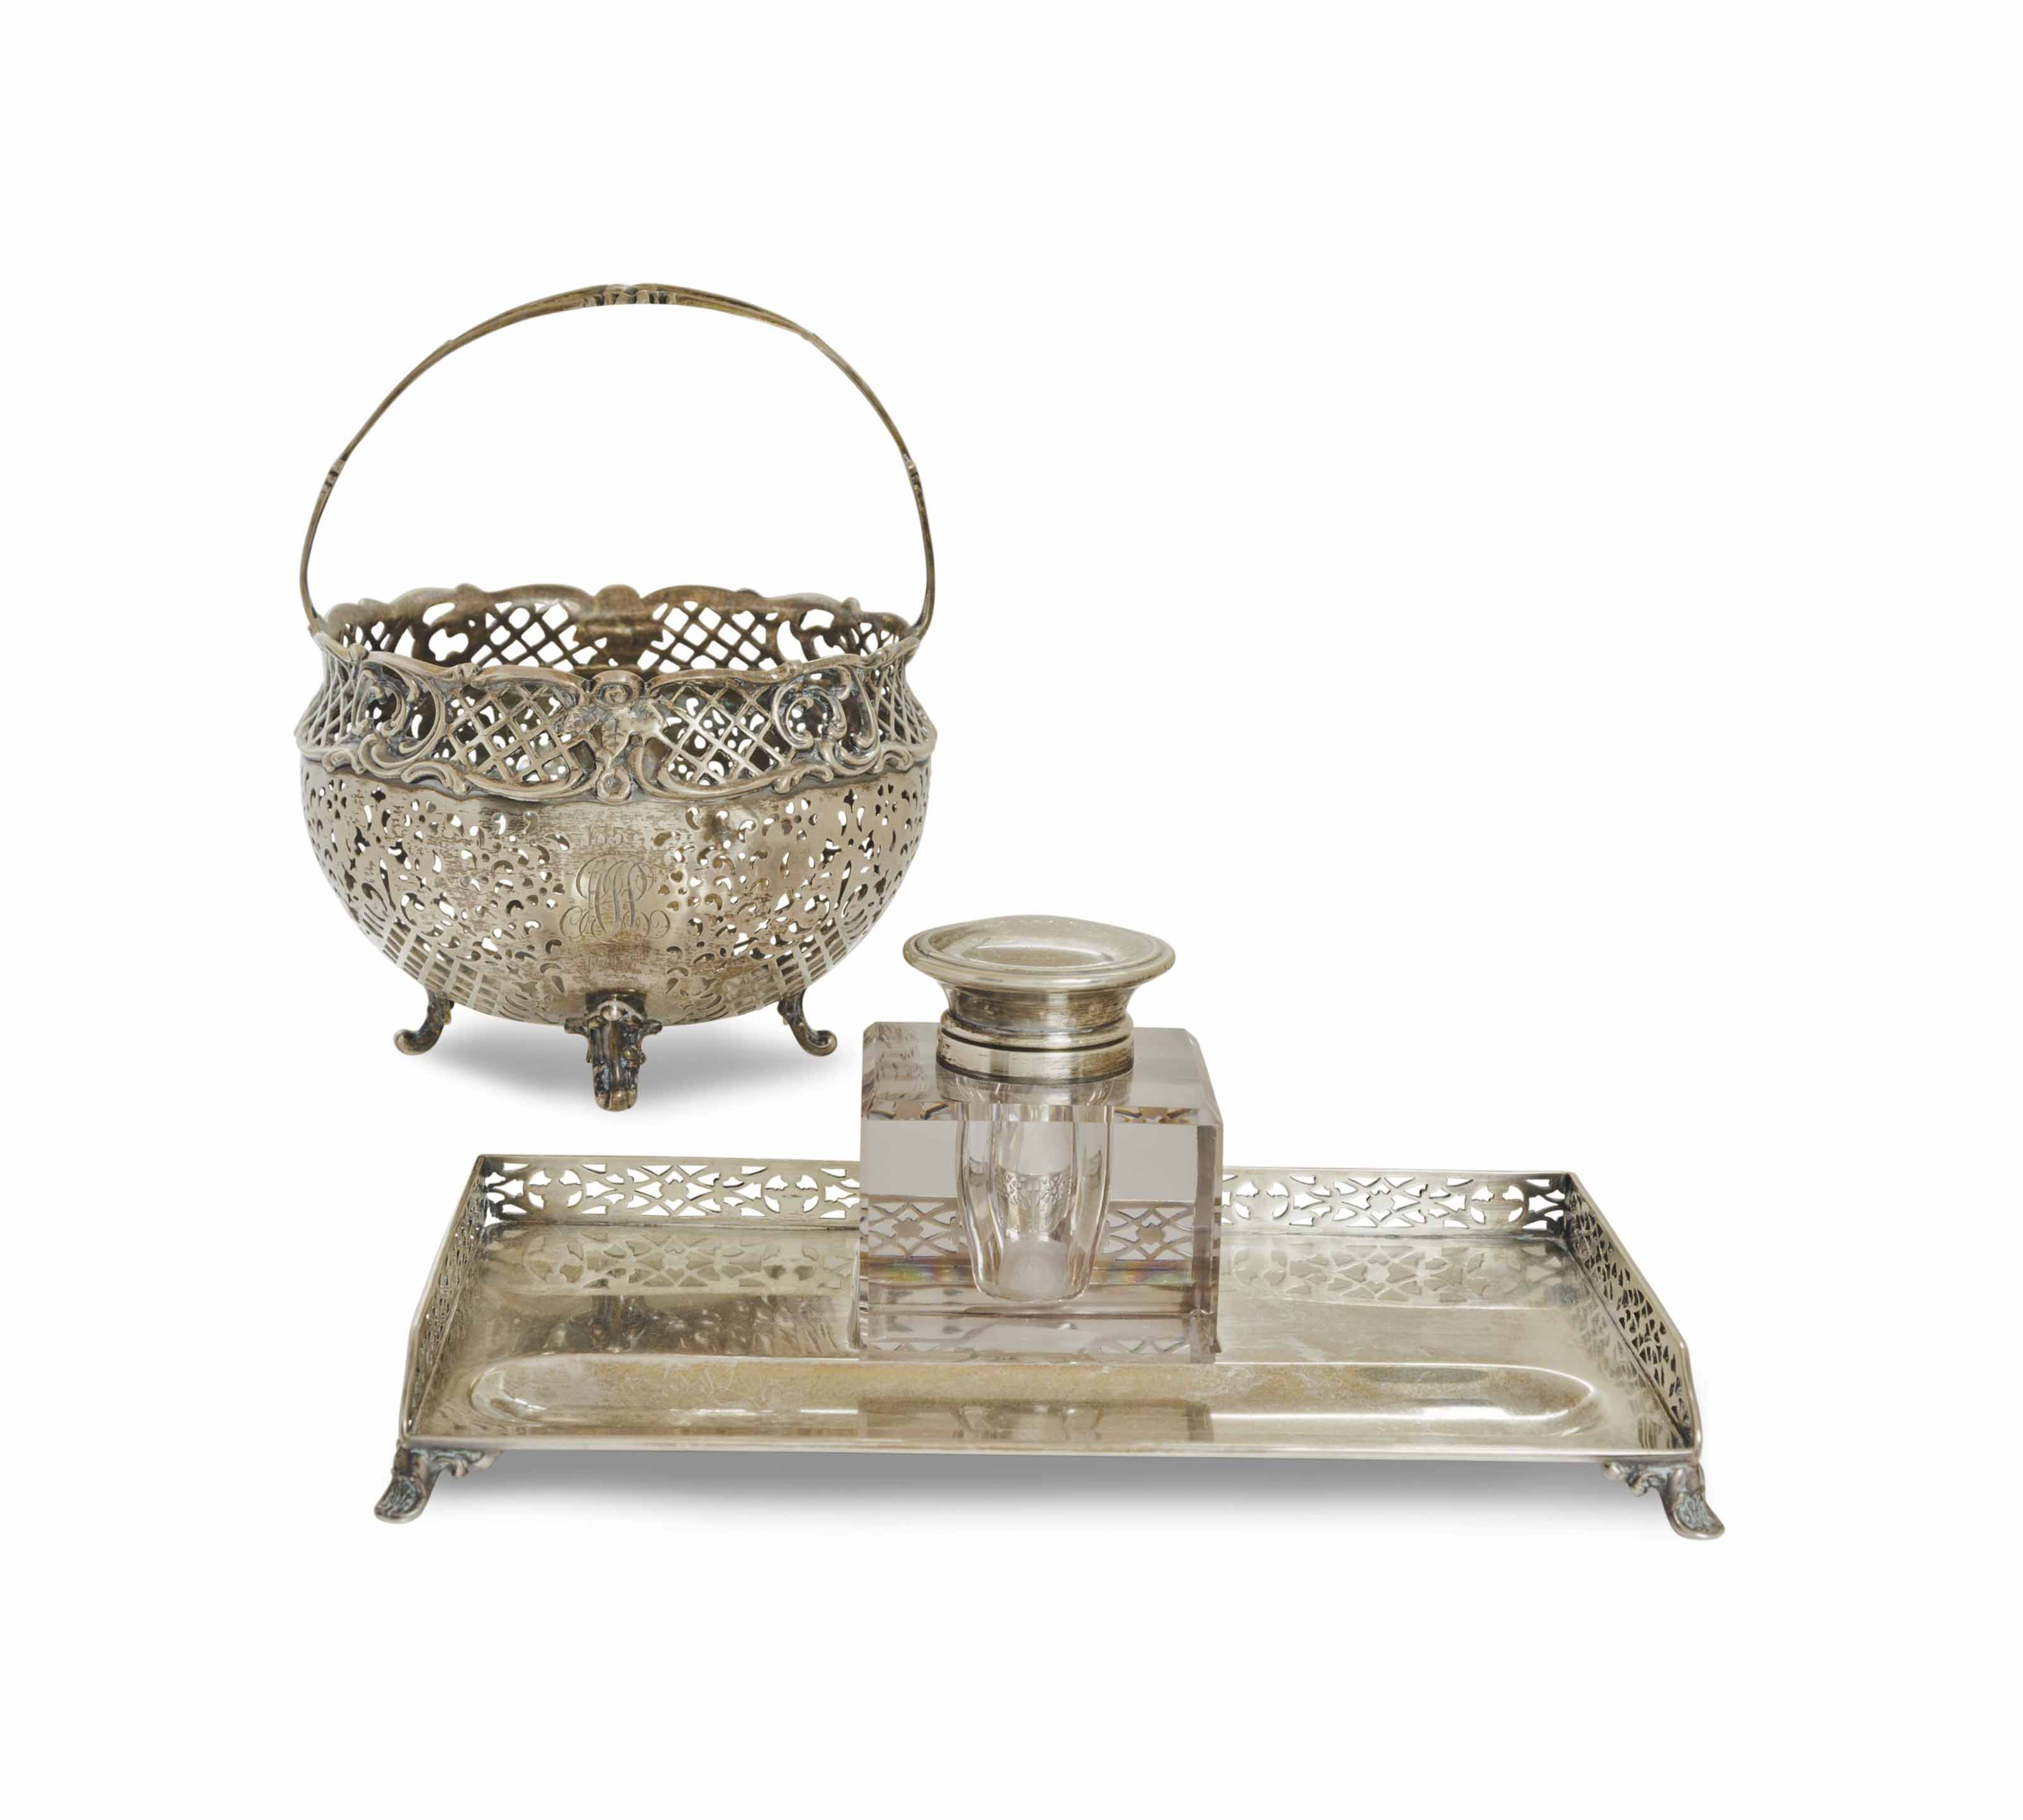 AN ASSEMBLED GROUP OF AMERICAN SILVER DESK ACCESSORIES,